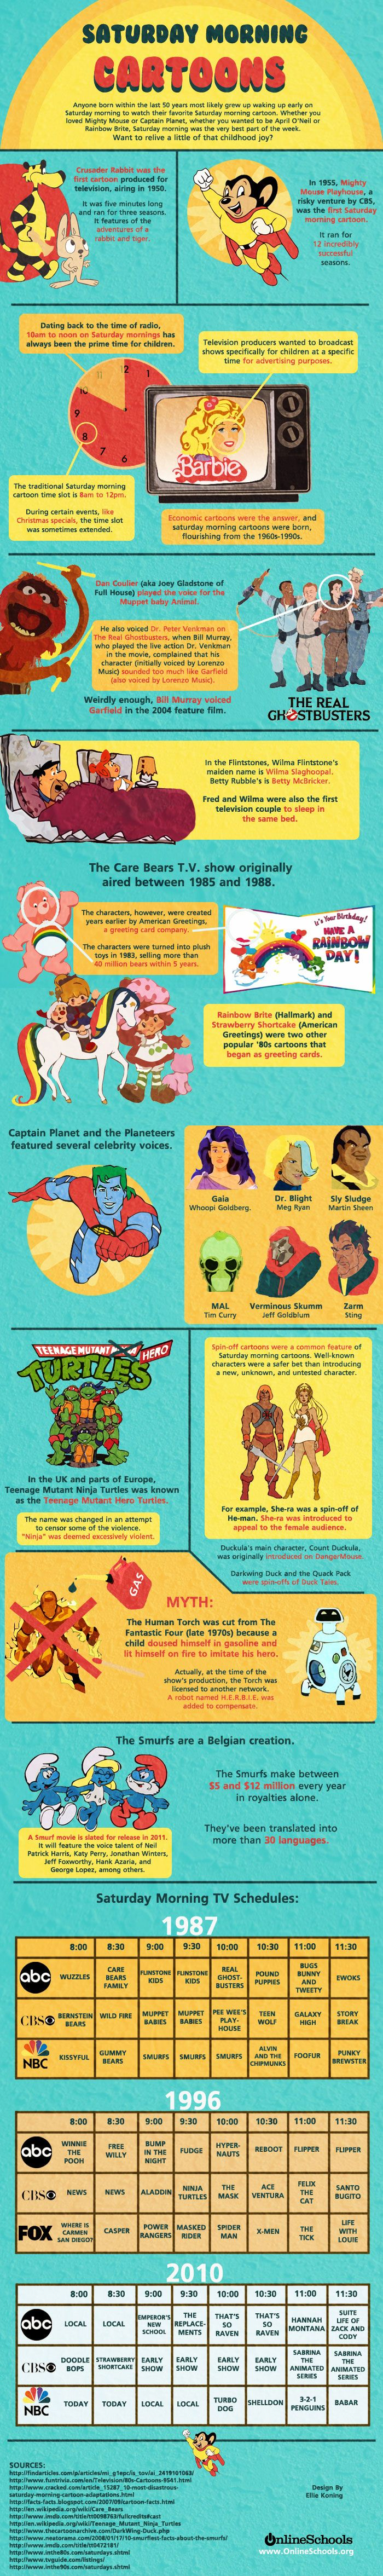 A colorful history of Saturday Morning Cartoons. P.S. - I miss Heathcliff.